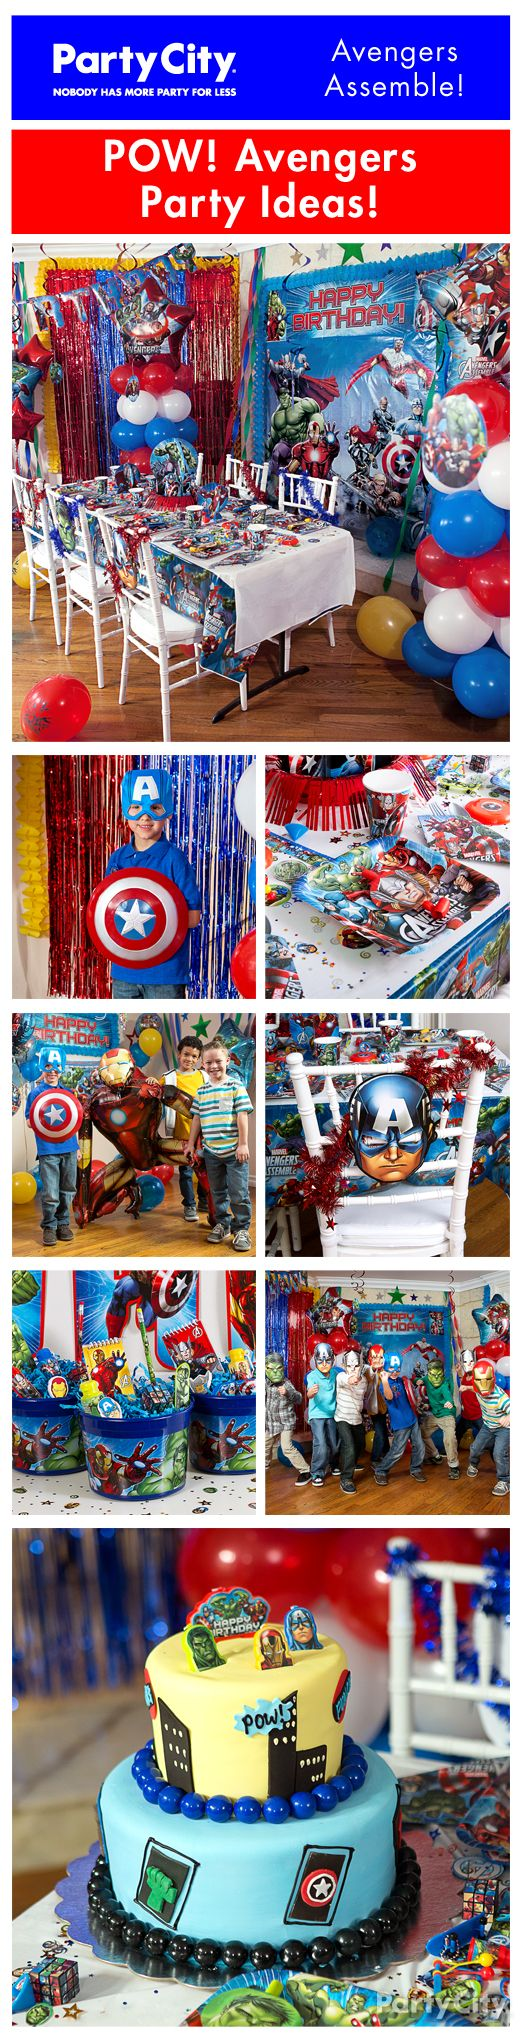 Assemble an action-packed party for your birthday hero and allies! Captain America, Iron Man and the rest of the team join the party with our out-of-this-world party ideas!